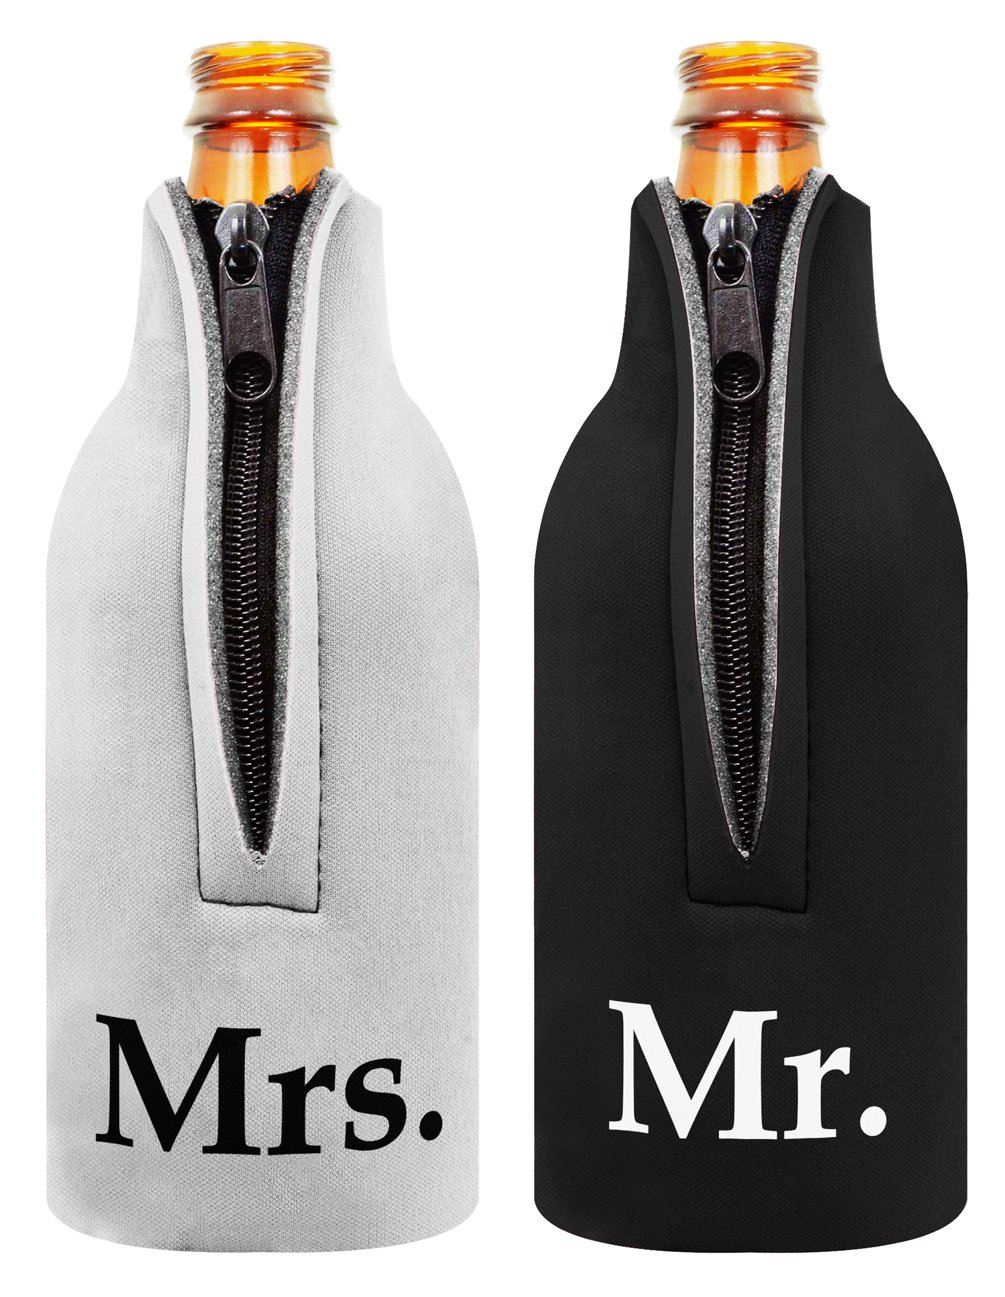 Bridal Shower Wedding Gift Beer Bottle Coolie Mr. and Mrs. 2 Pack Bottle Drink Coolers Coolies BlackWhite